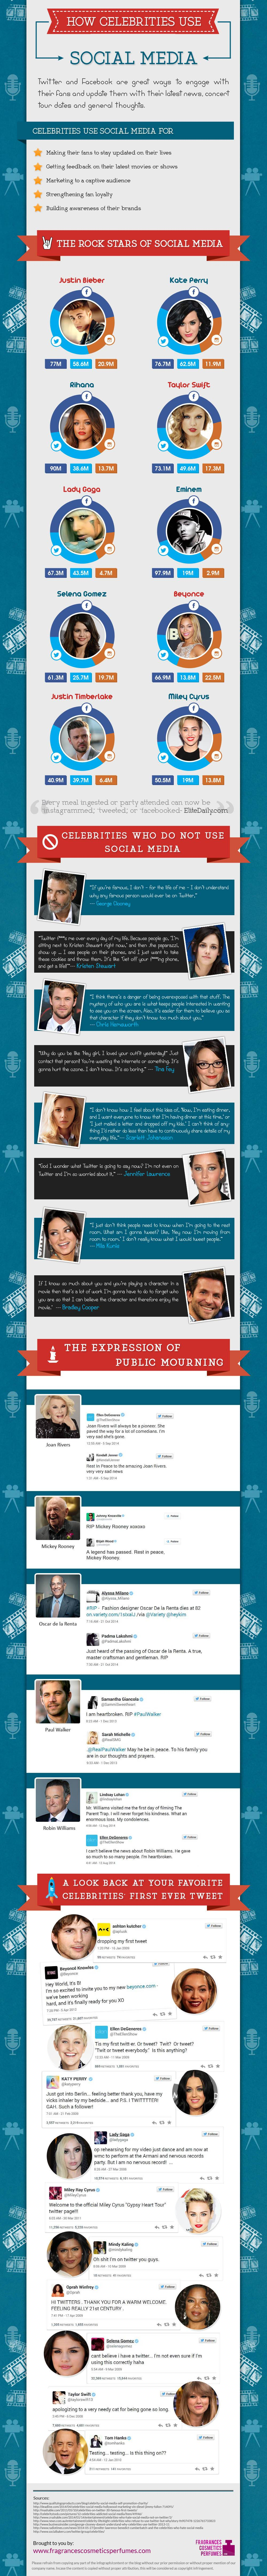 How Social Are Celebrities on Social Media